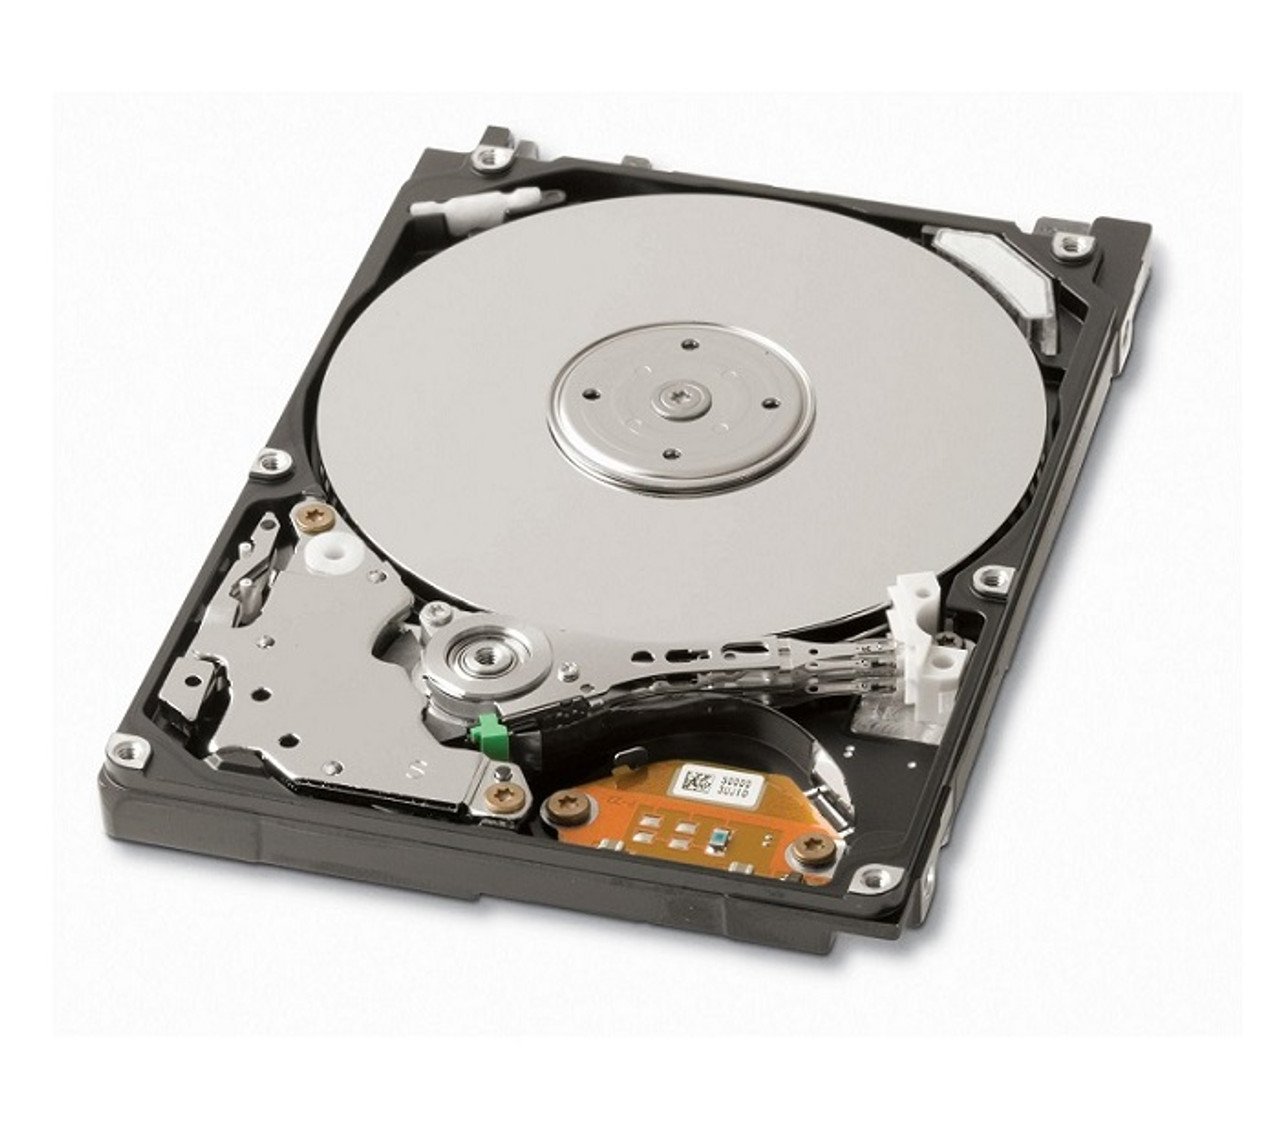 0A78253 - Hitachi Travelstar 5K500.B 320GB 5400RPM SATA 1.5GB/s 8MB Cache 2.5-inch Hard Disk Drive